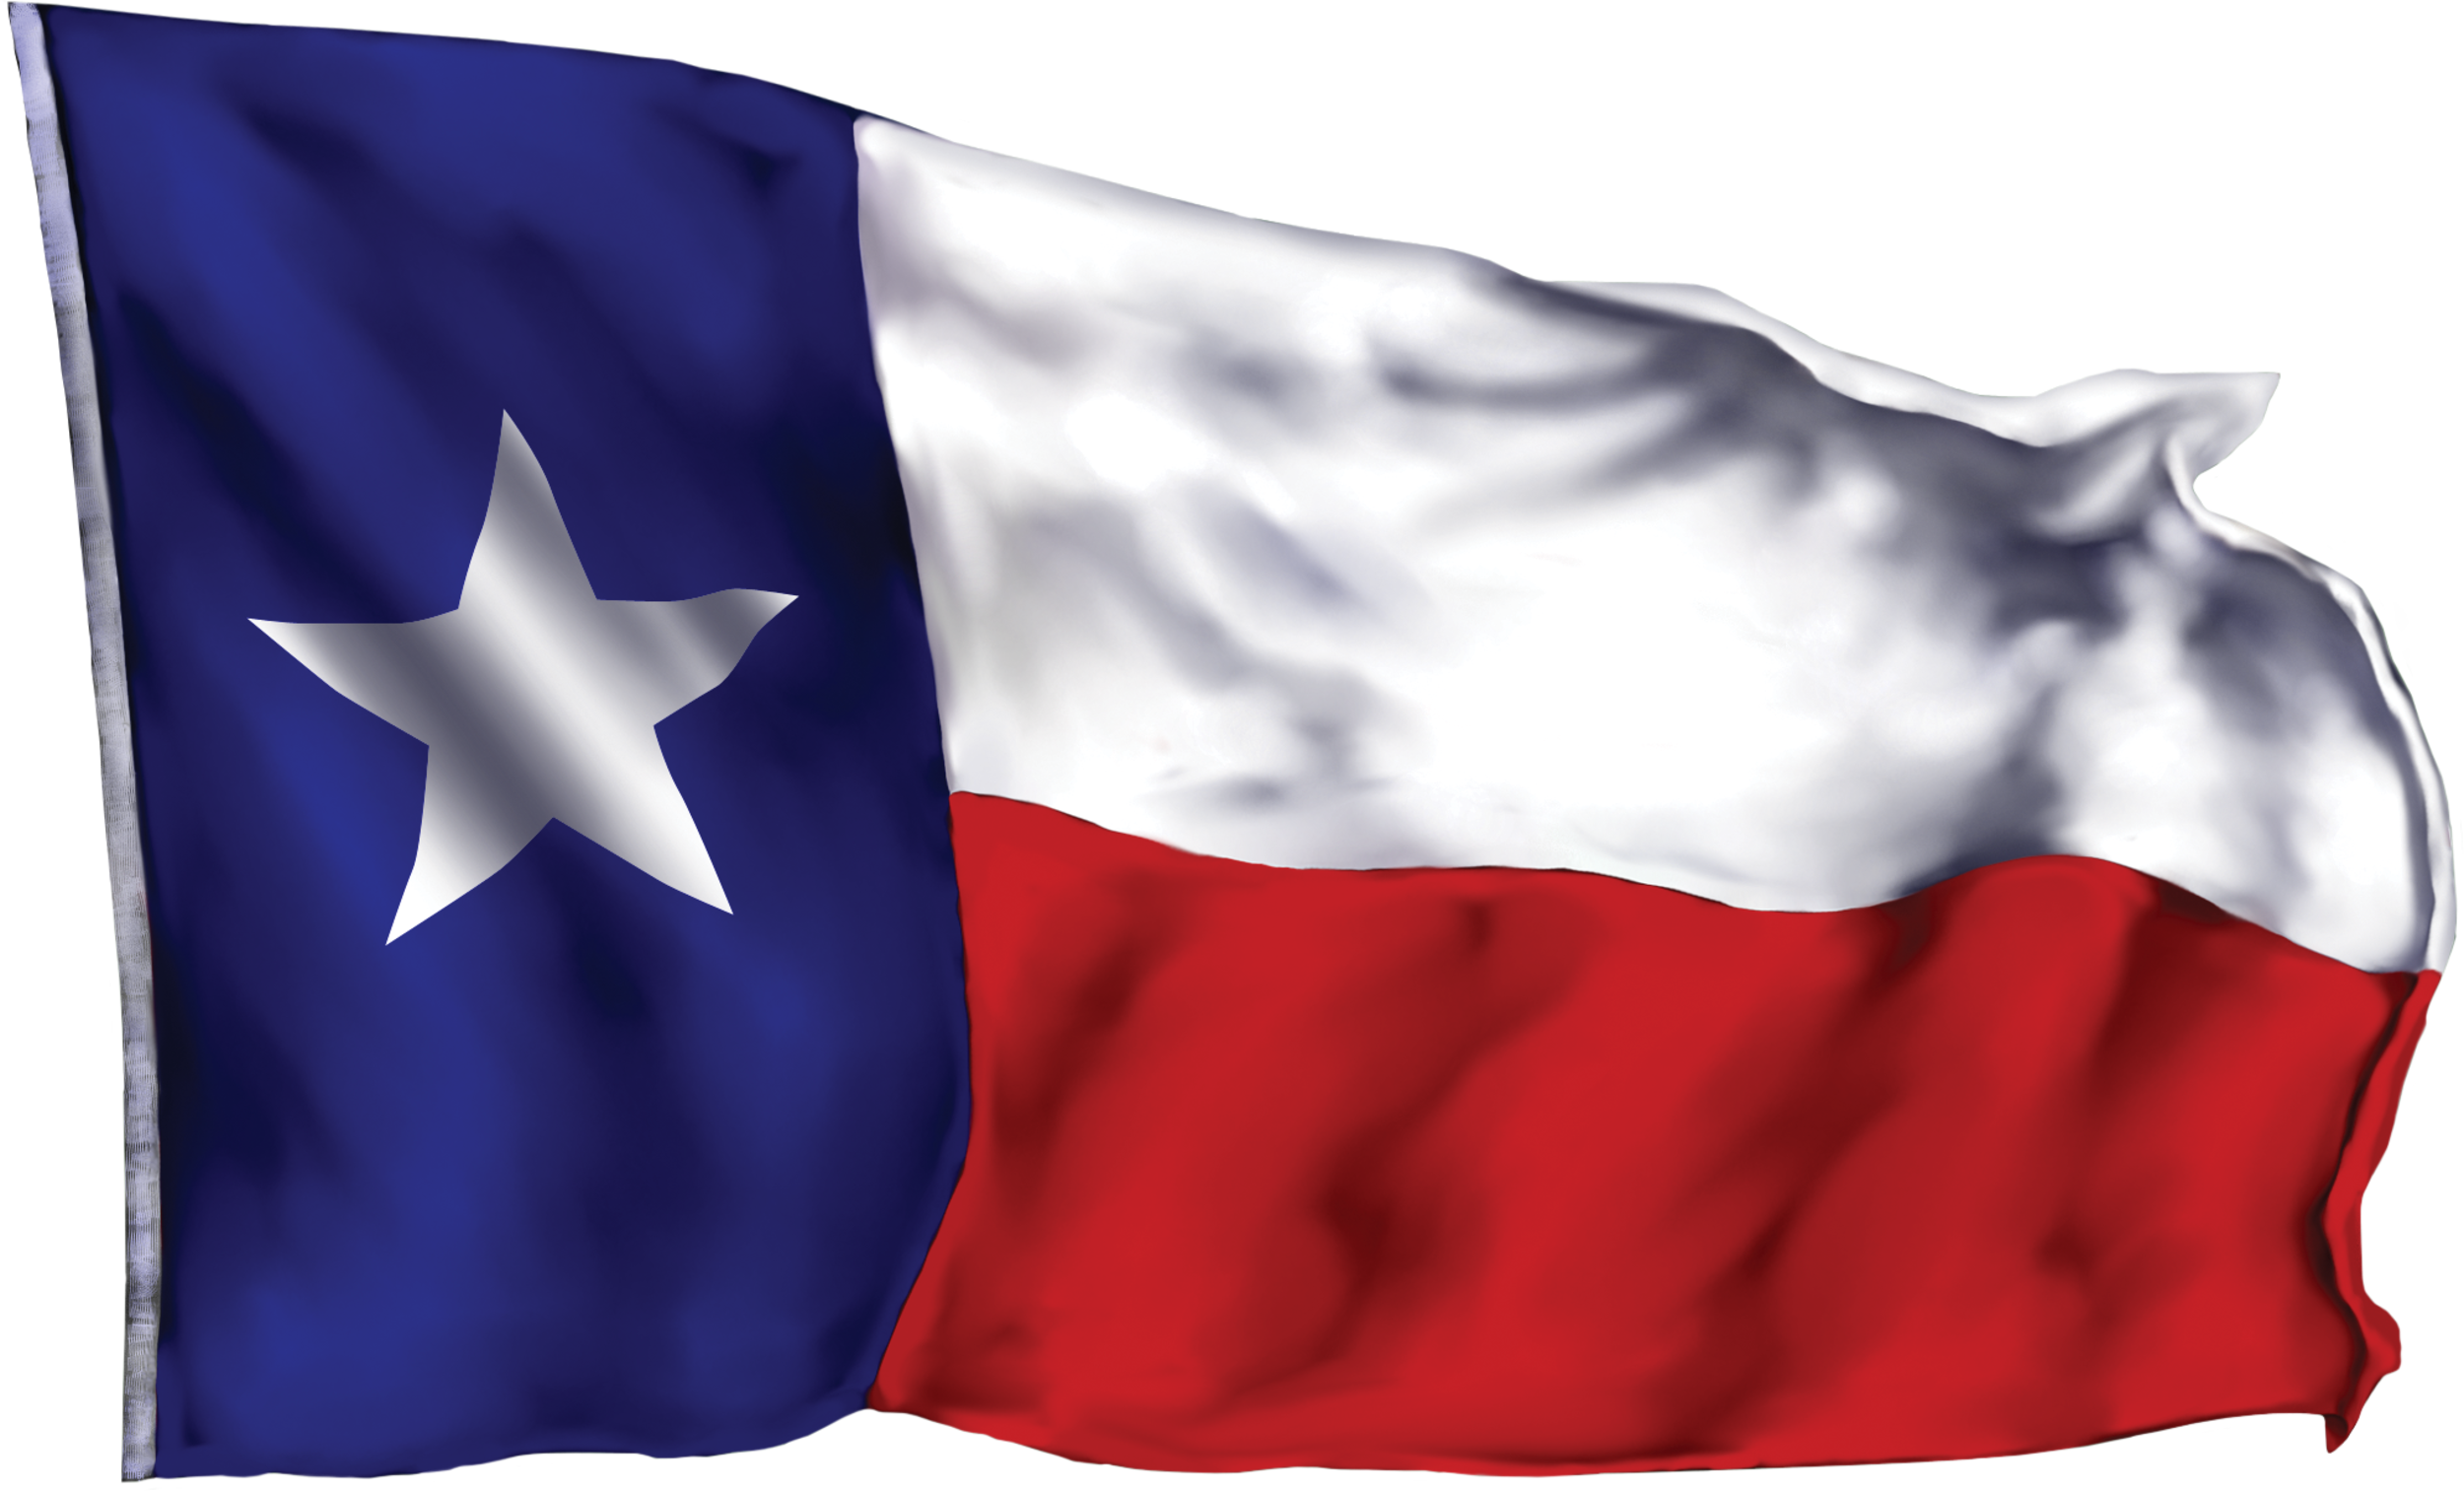 Texas state flag clipart image black and white library 18+ Texas Flag Clip Art | ClipartLook image black and white library